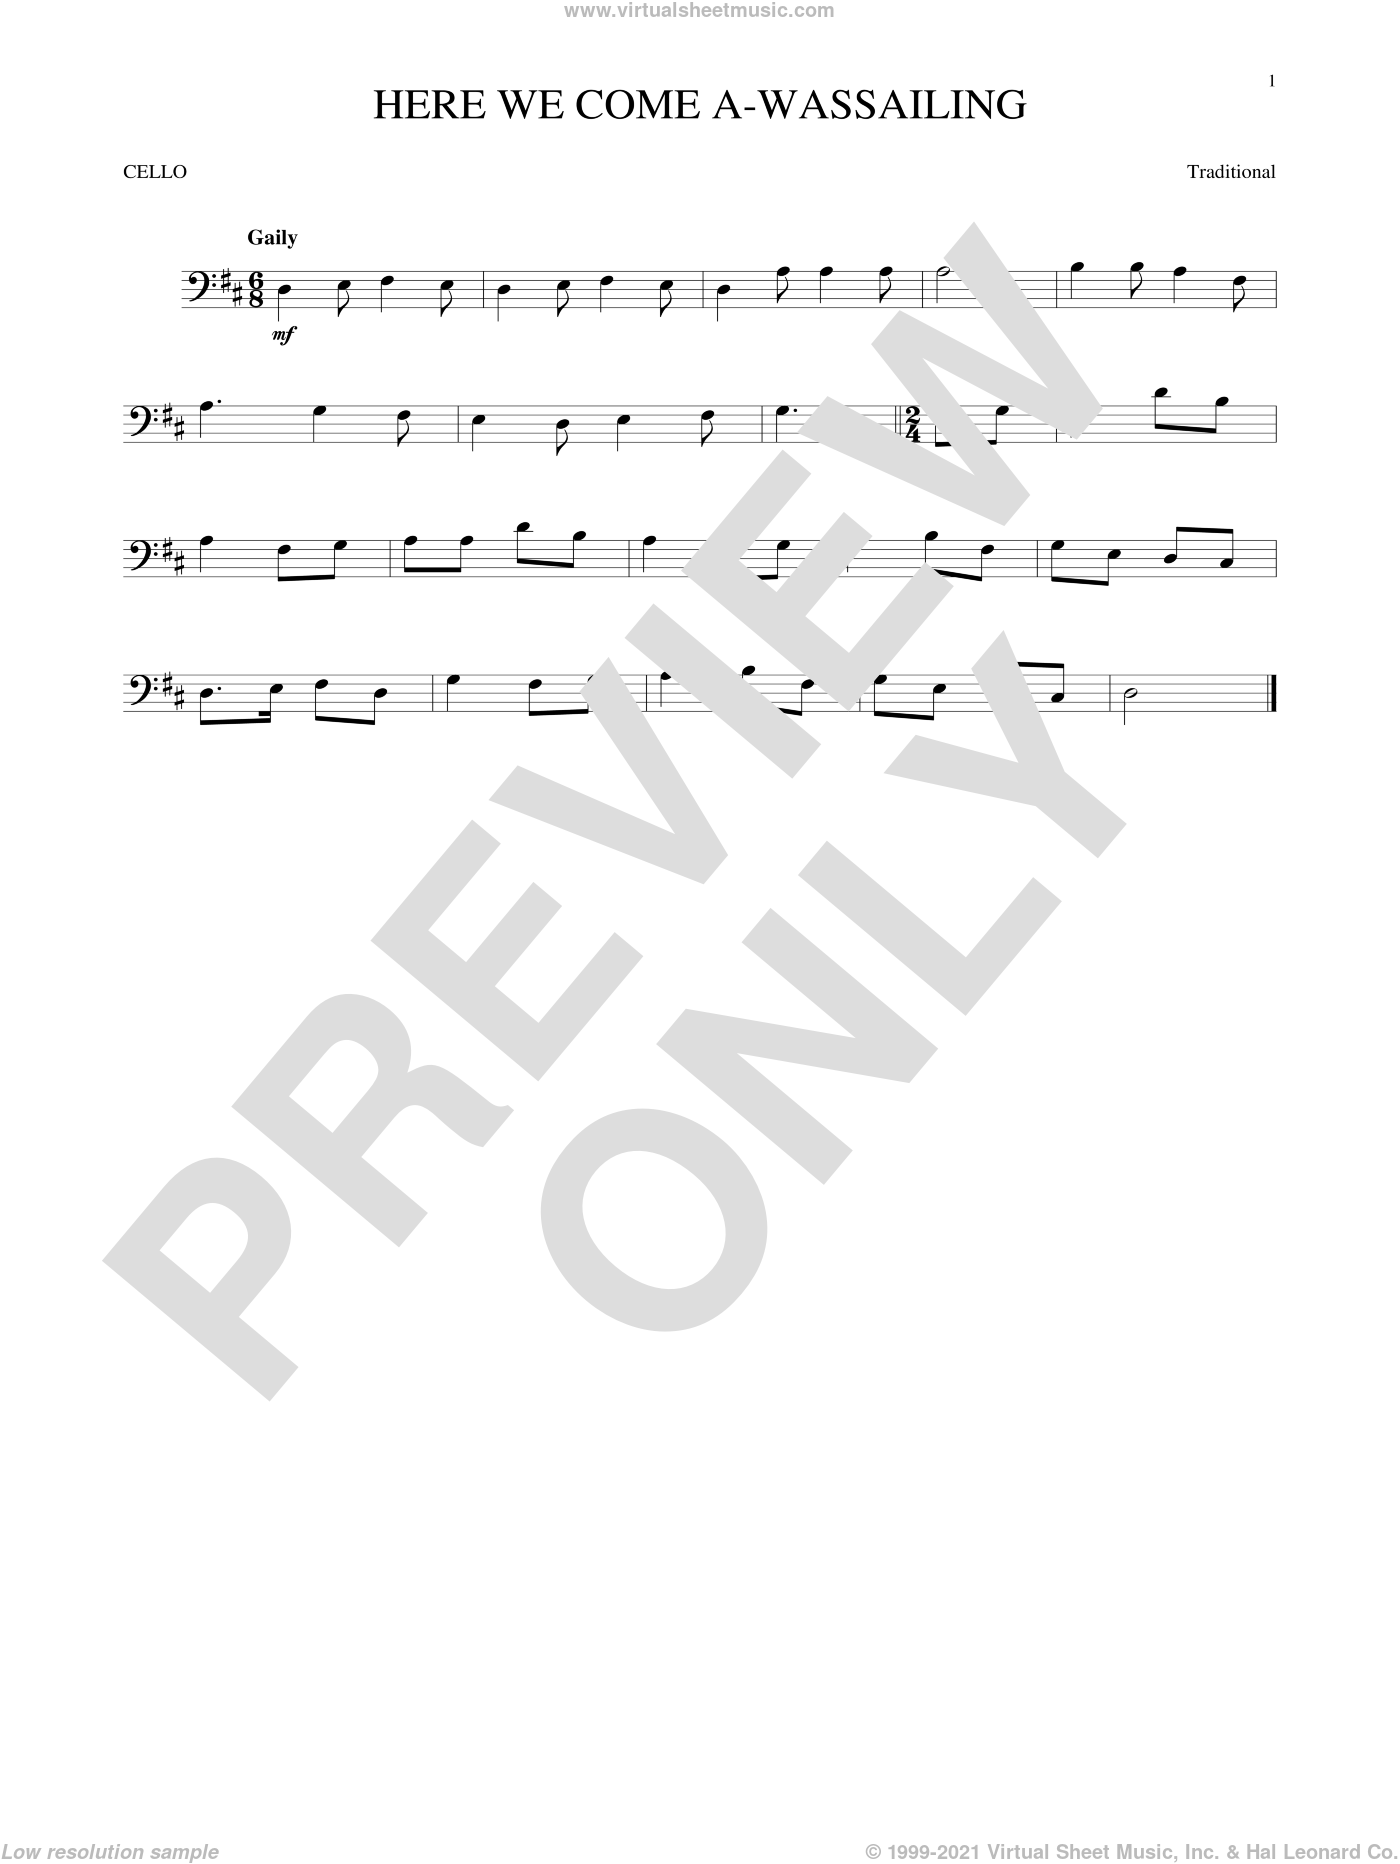 Here We Come A-Wassailing sheet music for cello solo, intermediate skill level